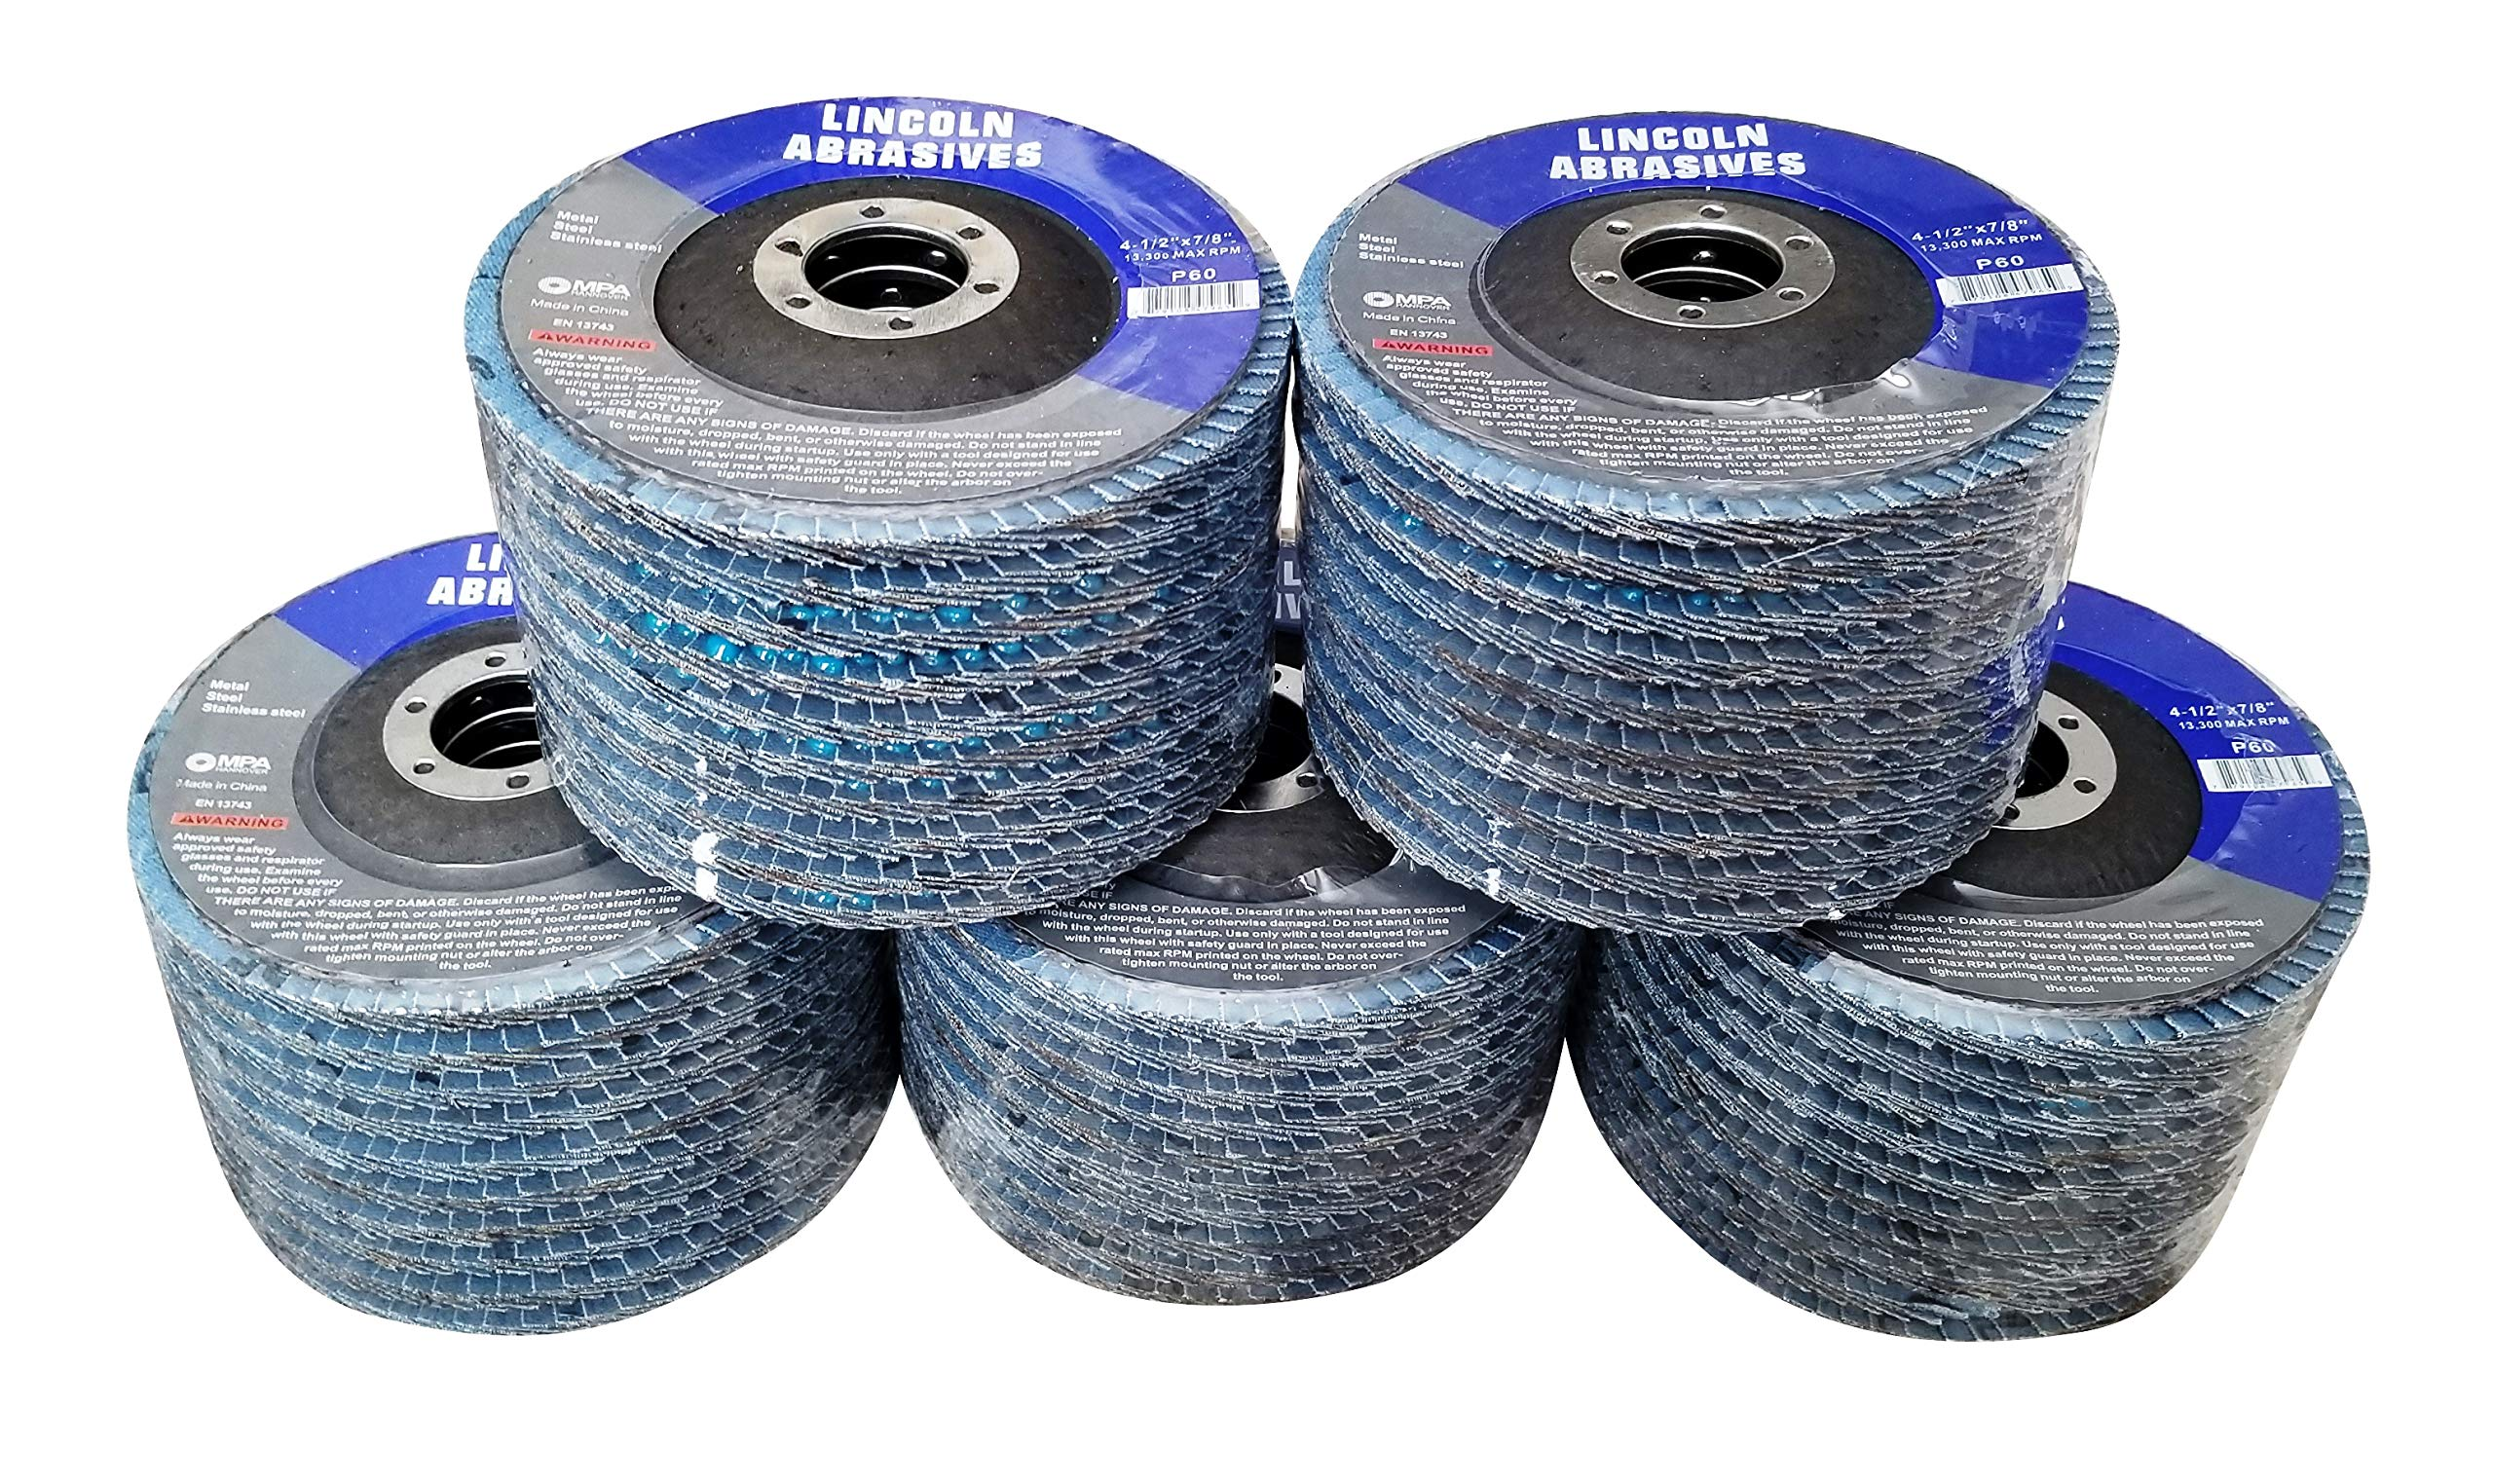 50 Pack Flap Discs 60 Grit 4.5'' x 7/8'' Sanding Wheels